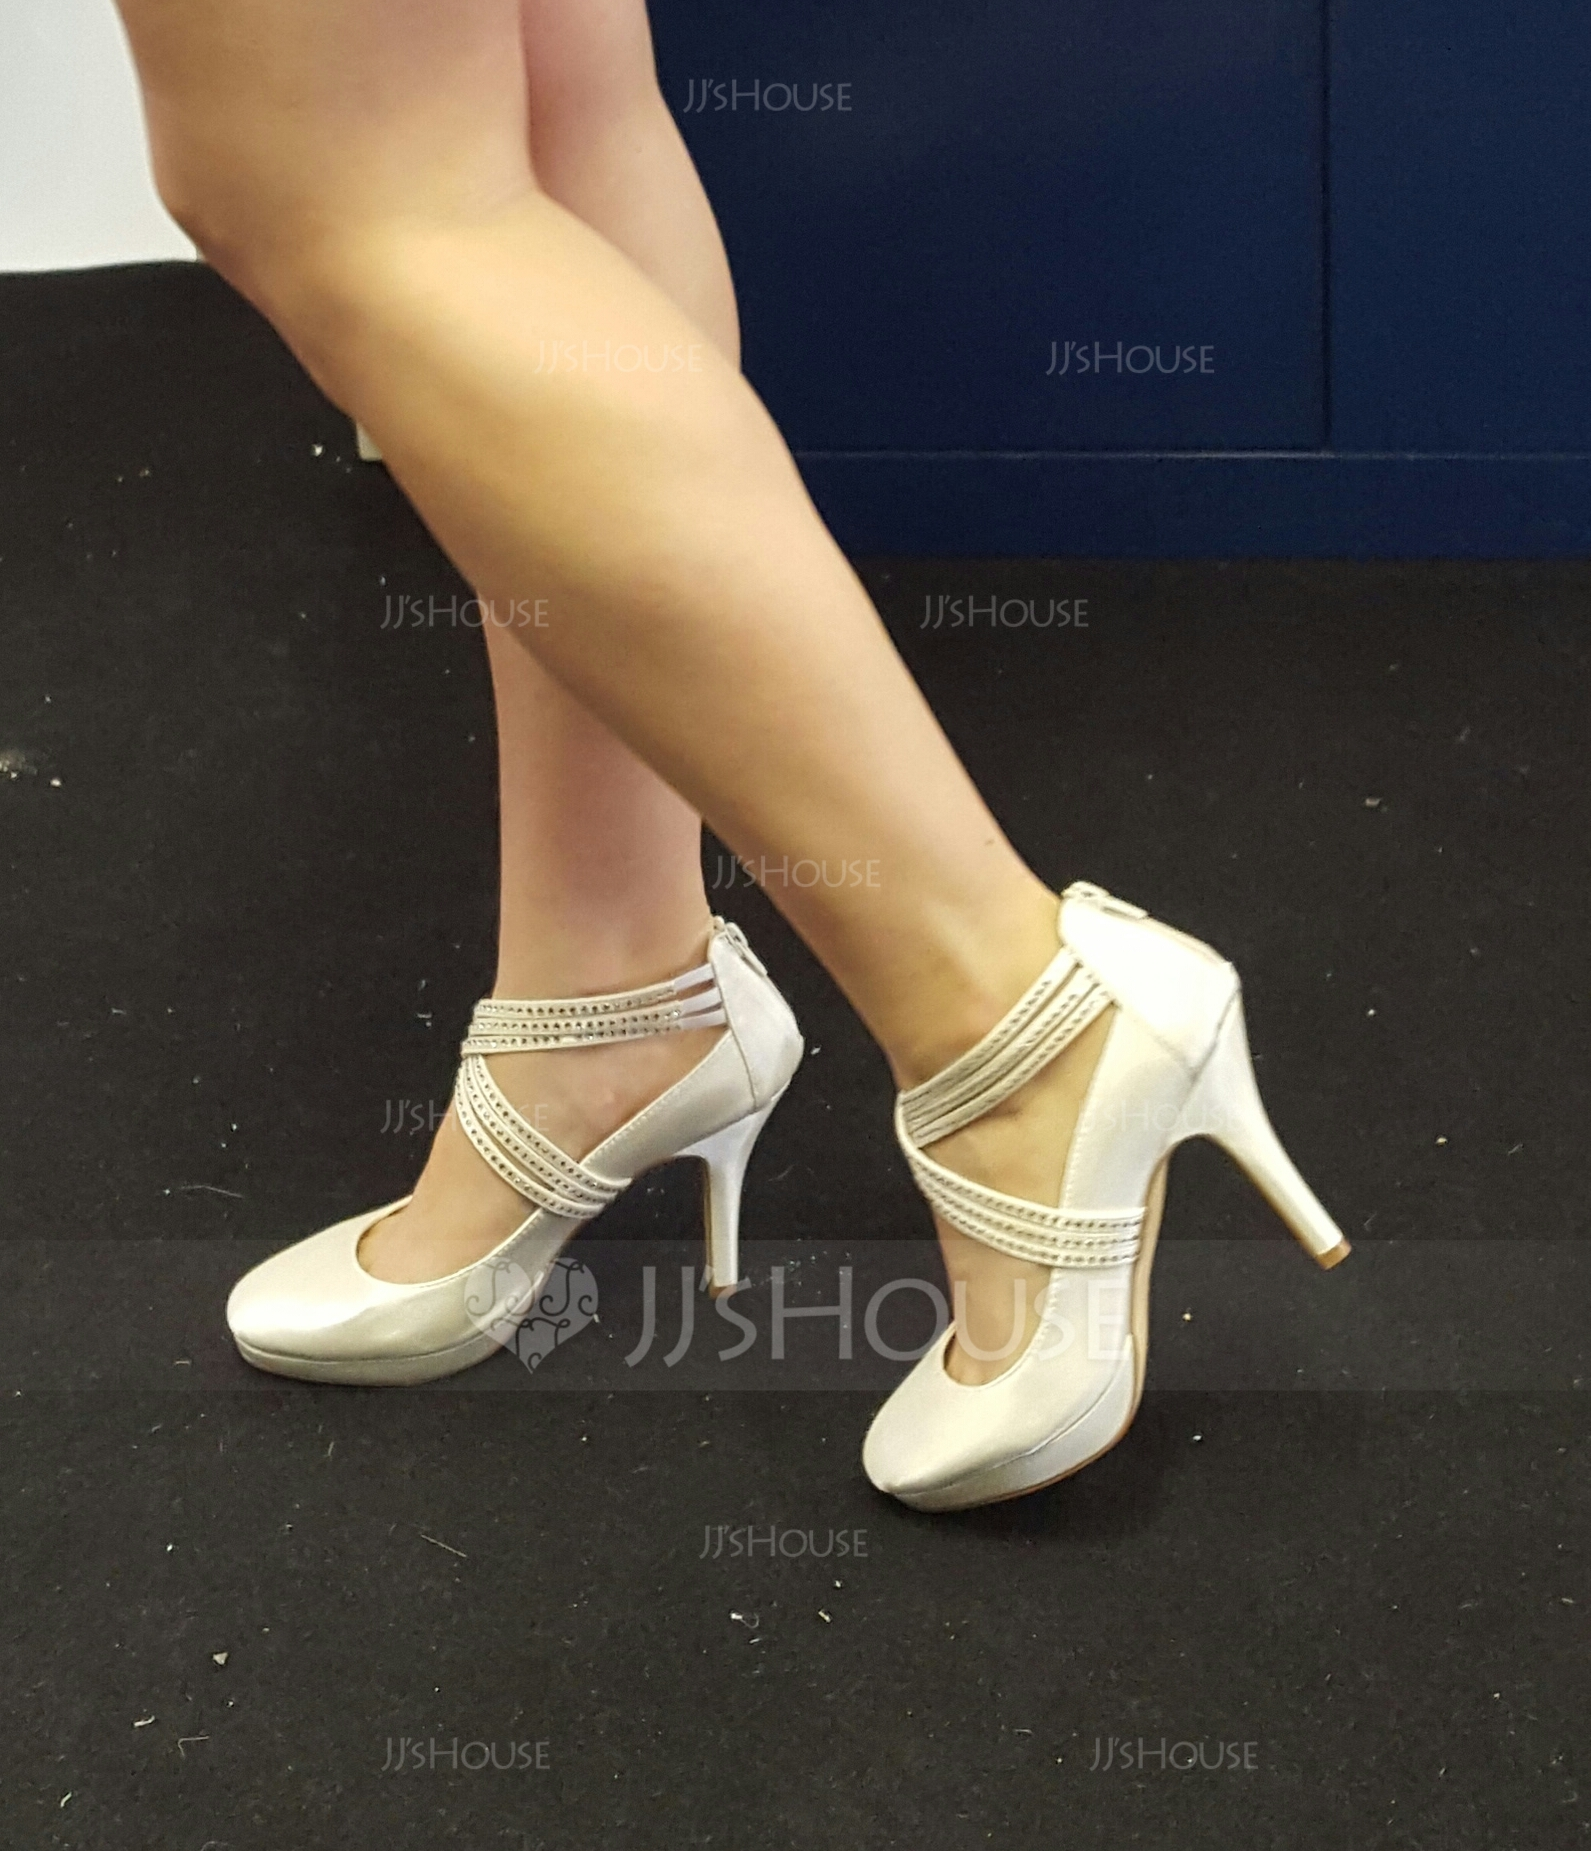 Wedding Shoes That Wont Fit